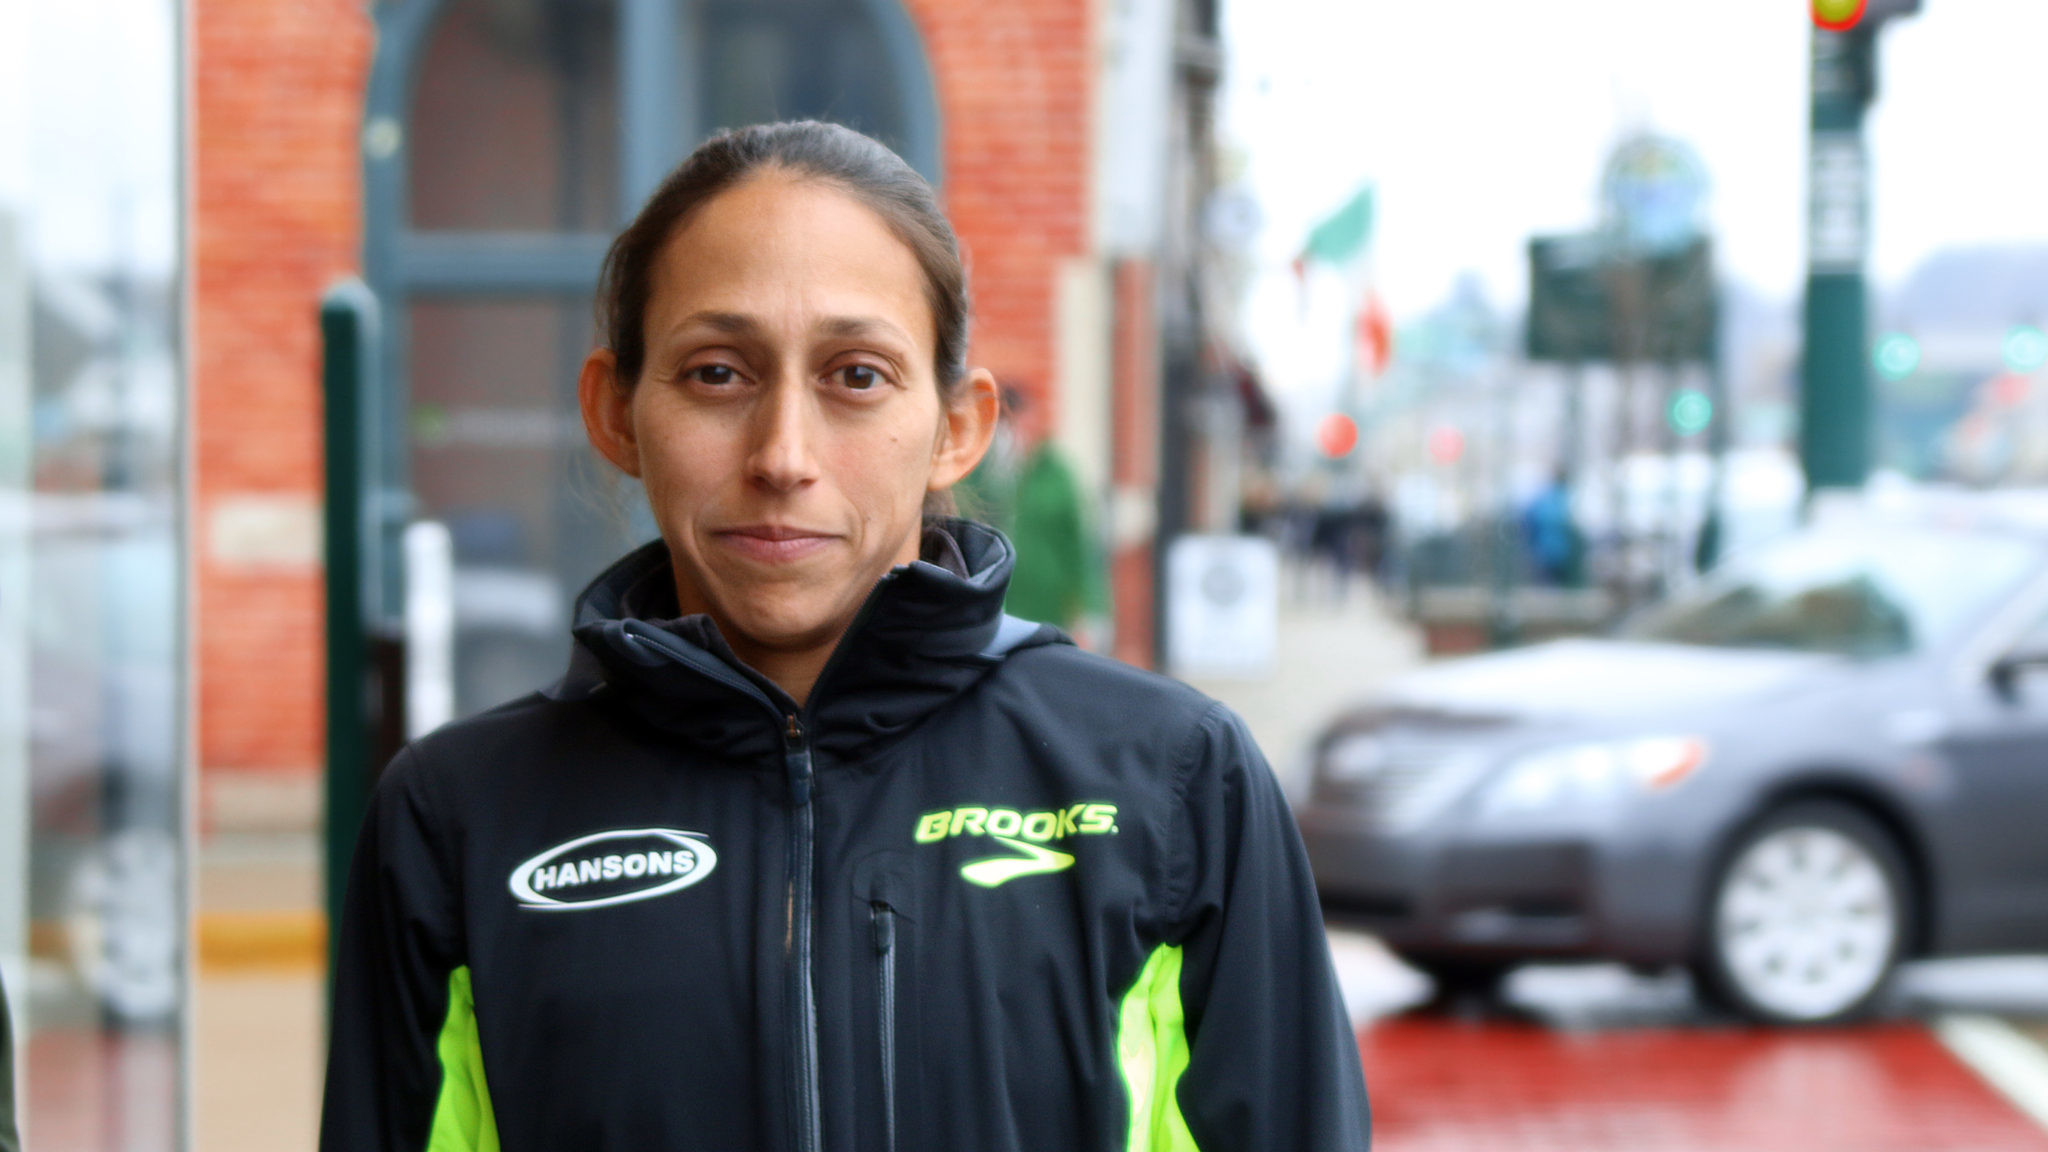 Desiree Linden is going to be running the New York City Marathon before Boston